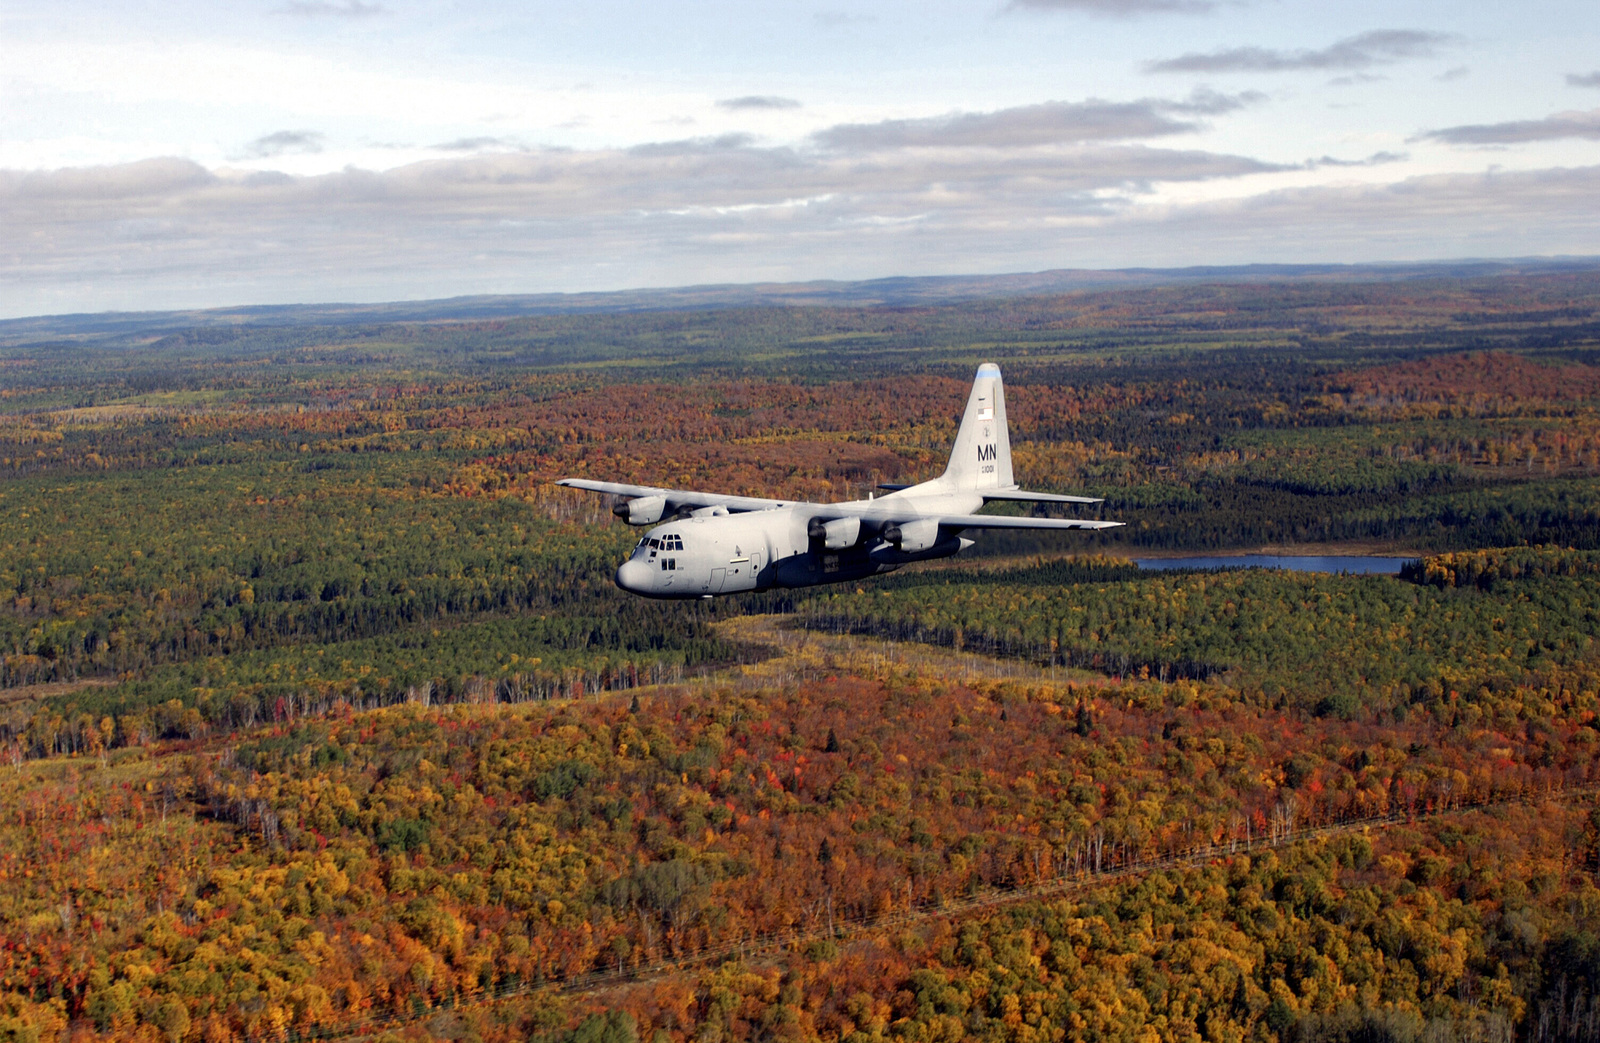 A US Air Force (USAF) Minnesota (MN) Air National Guard (ANG) C-130H3 Hercules aircraft assigned to the 133rd Airlift Wing, flies along the north shore of Lake Superior near Duluth, MN